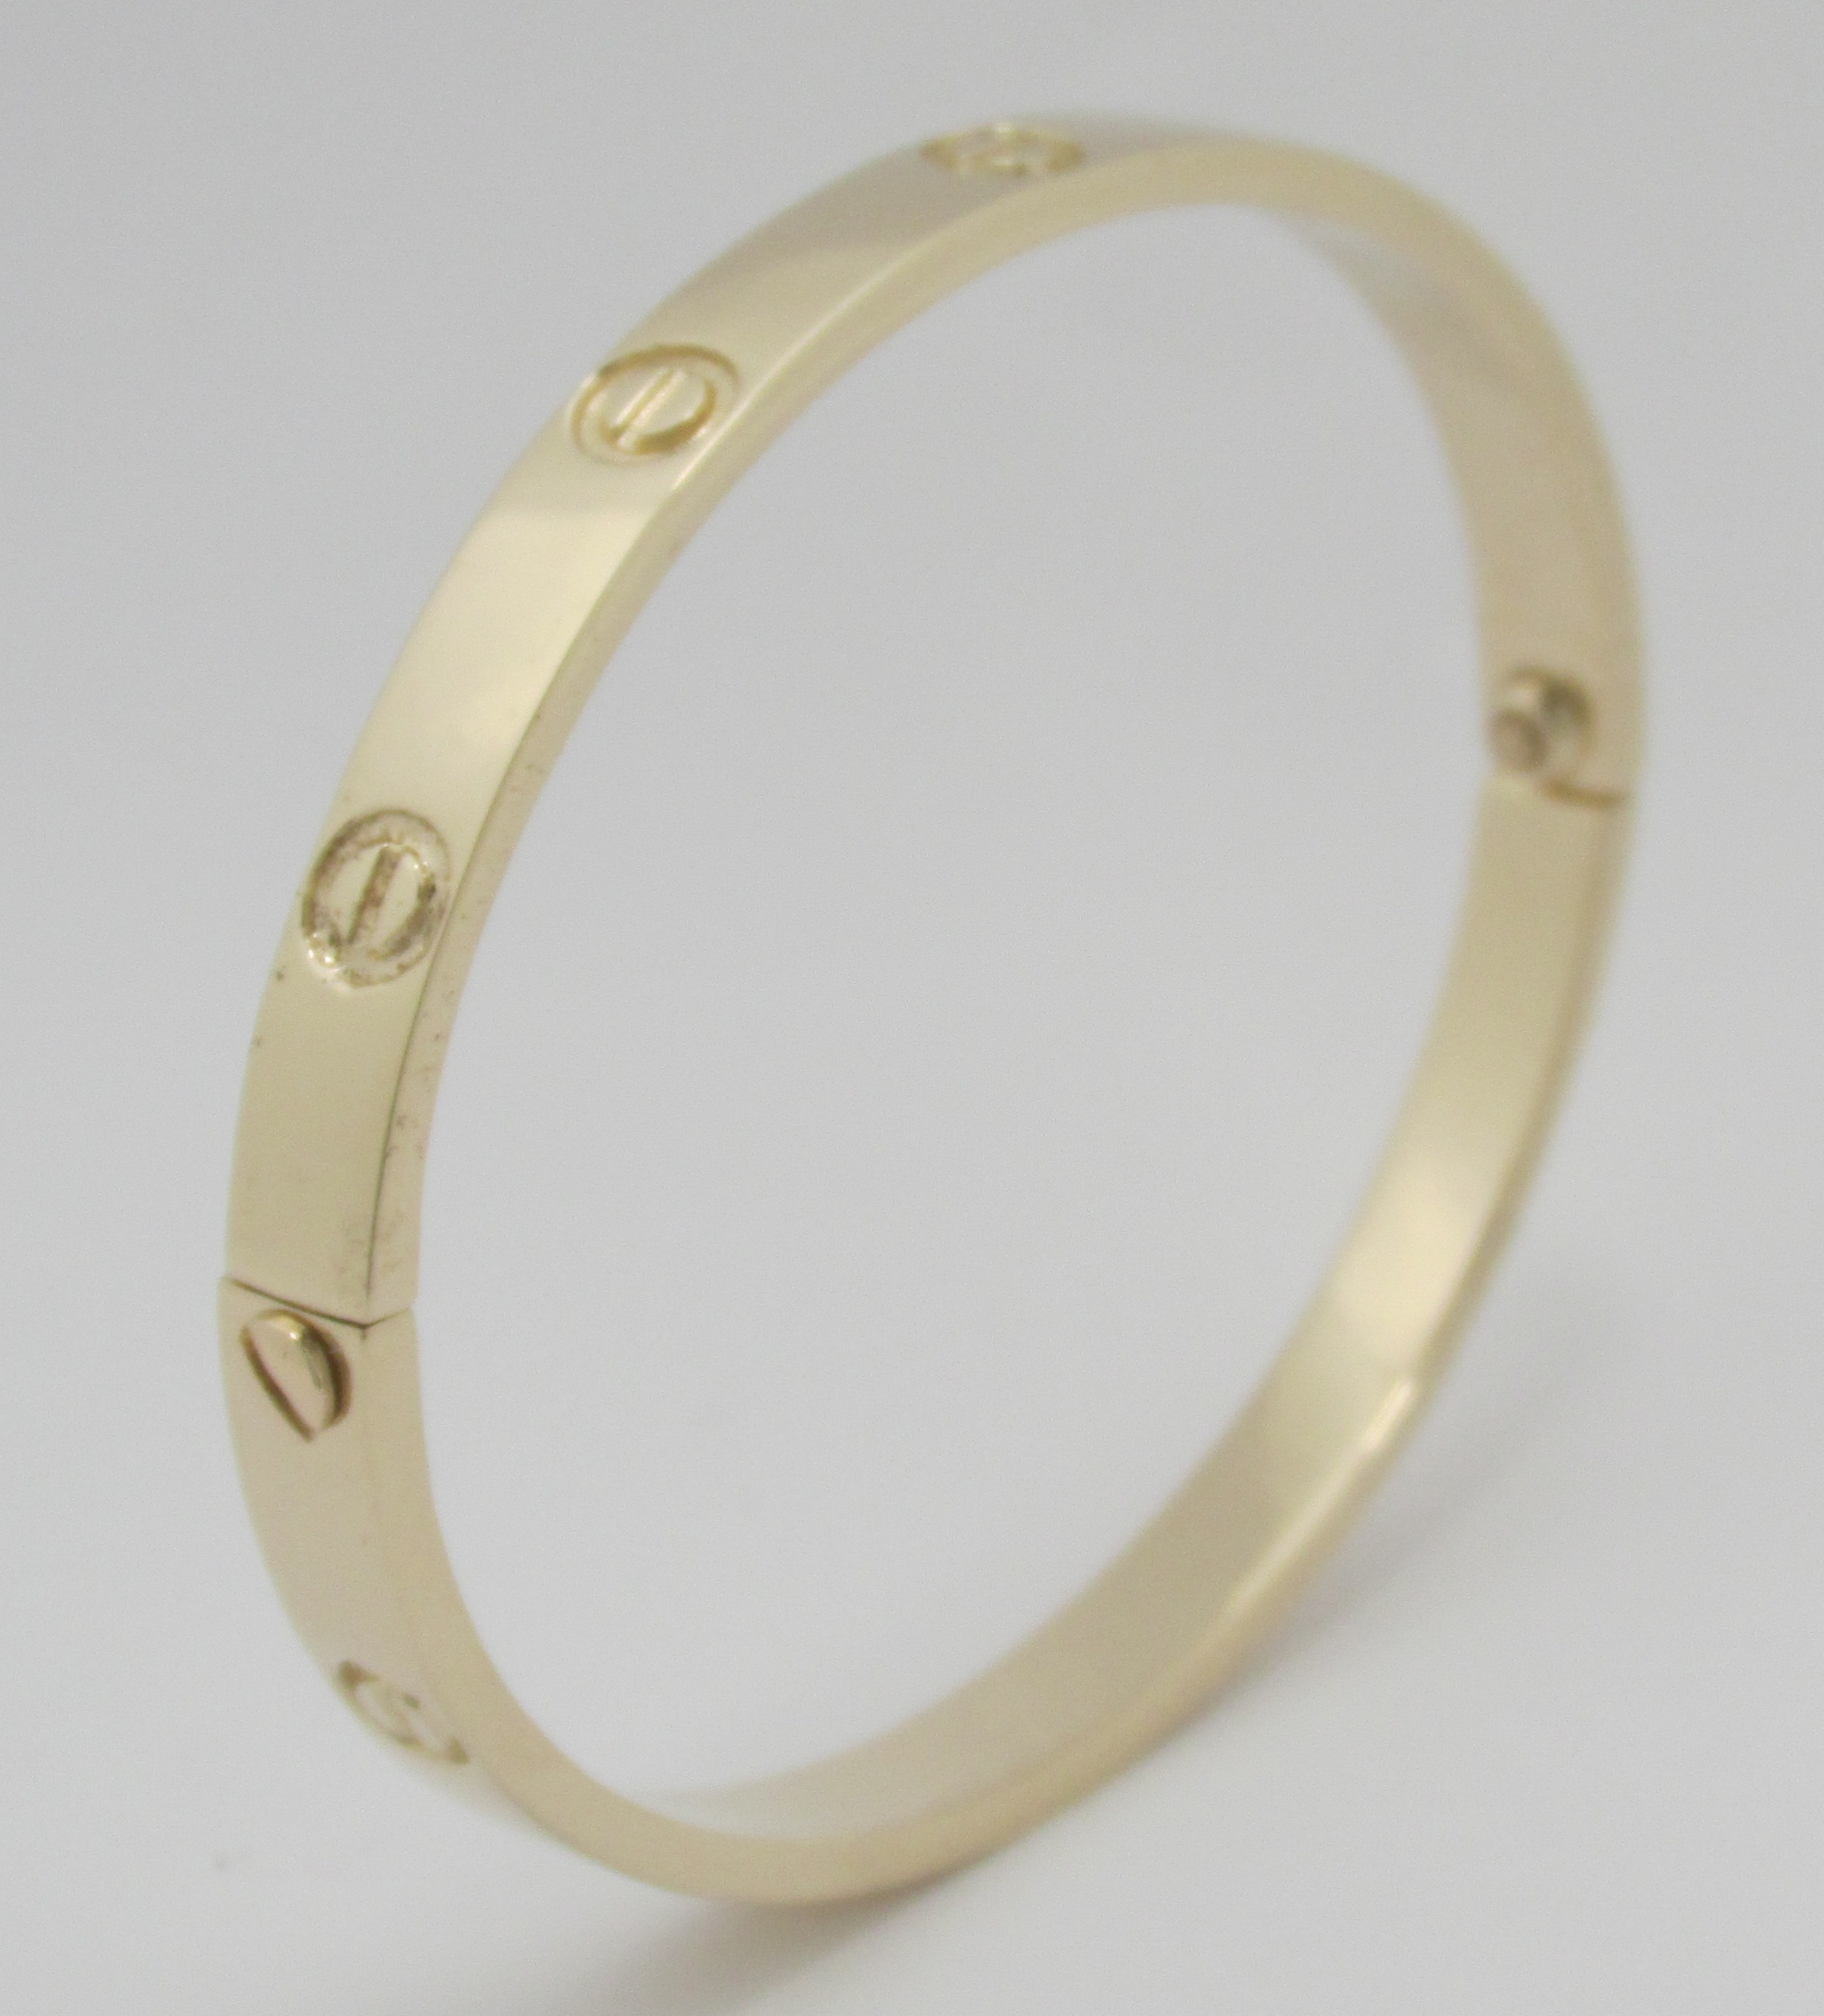 gold pin bangles etched gram bracelet bangle elegant hallmark solid tone